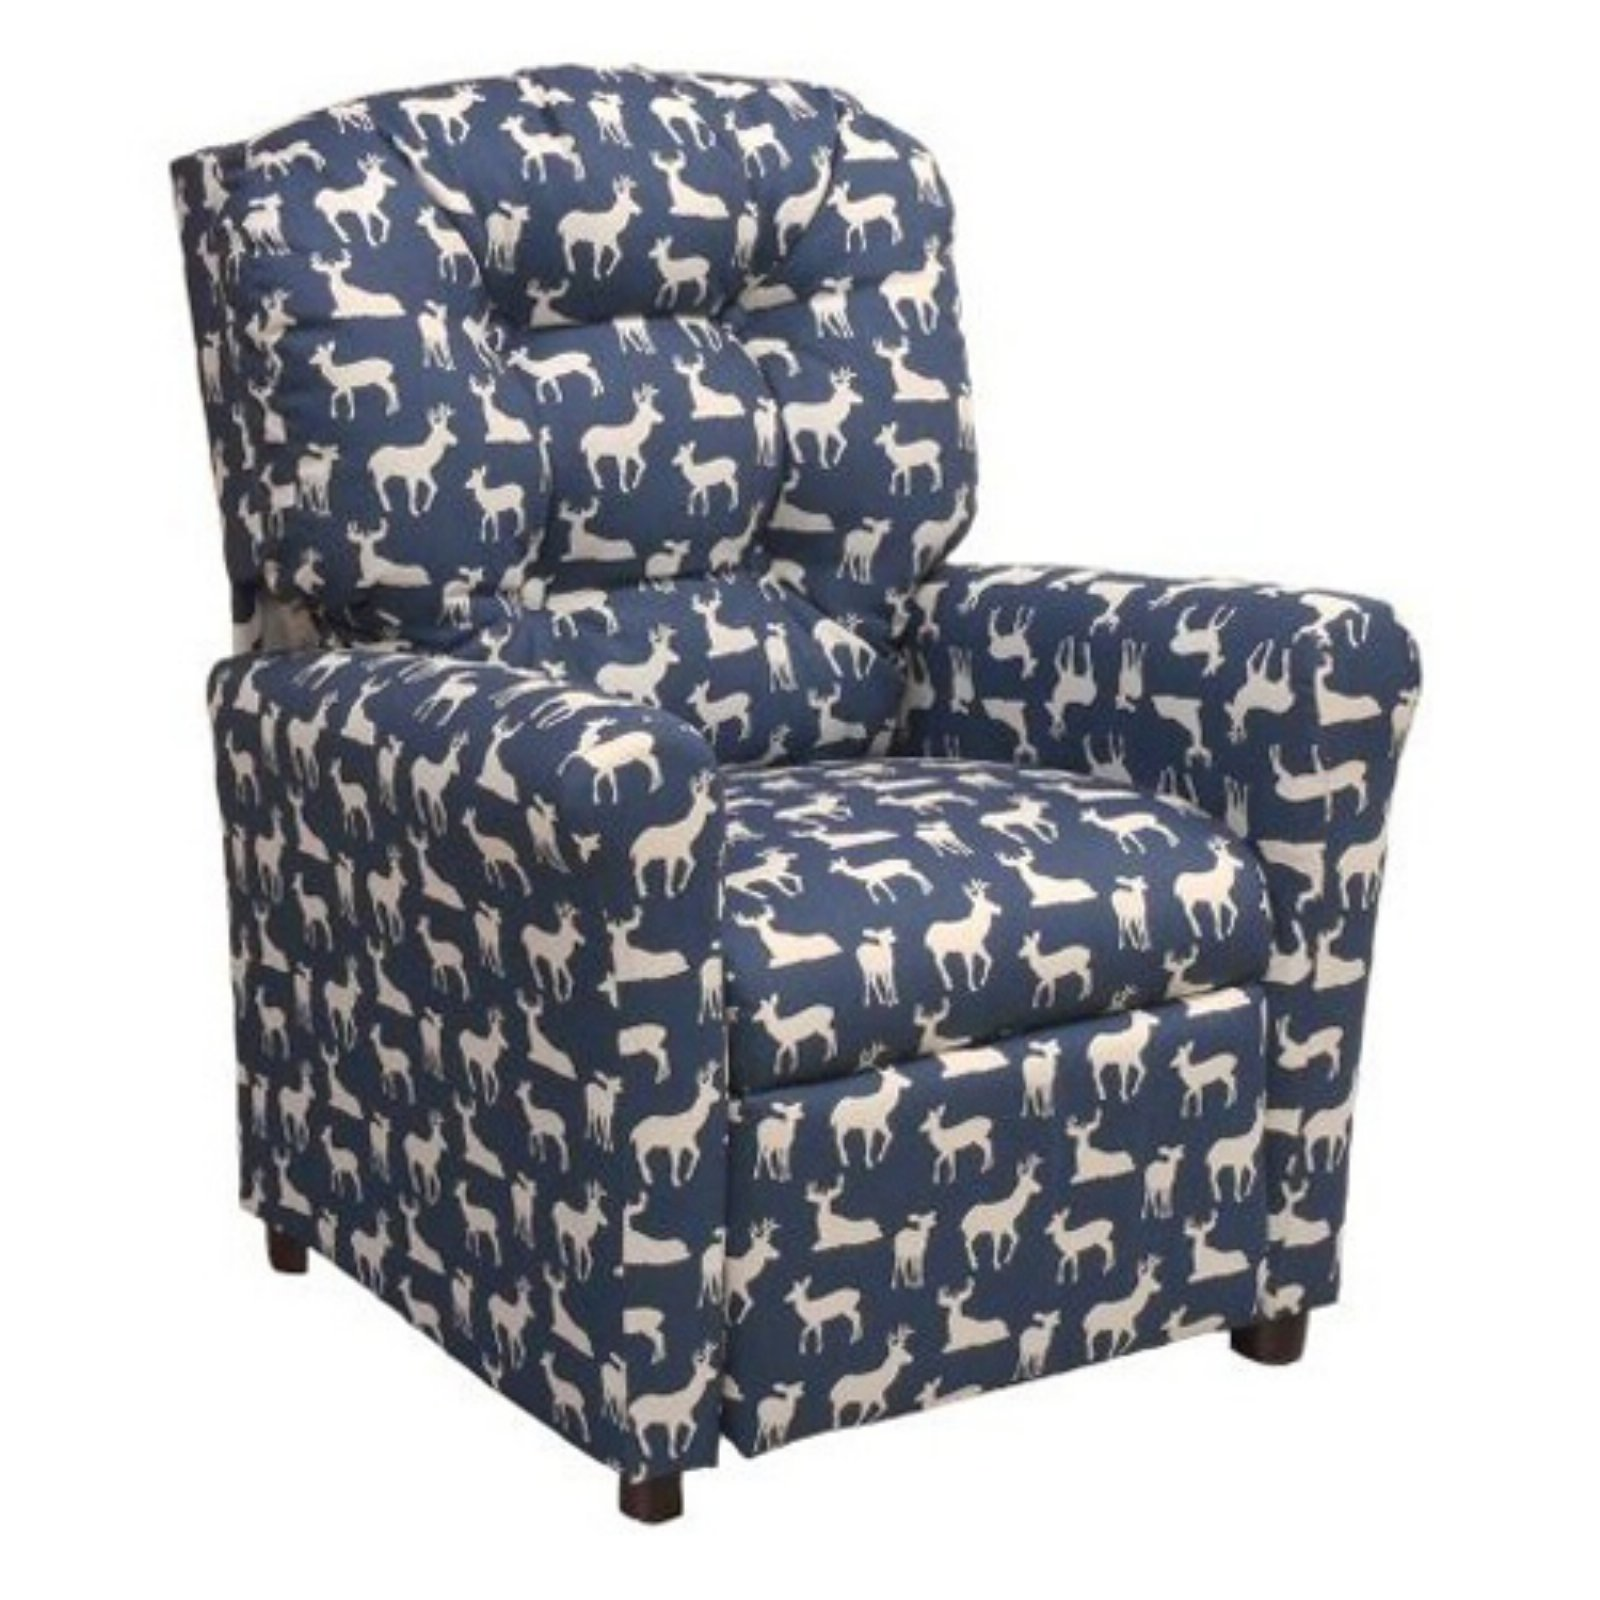 Brazil Furniture 4-Button Back Child Recliner - Navy Deer